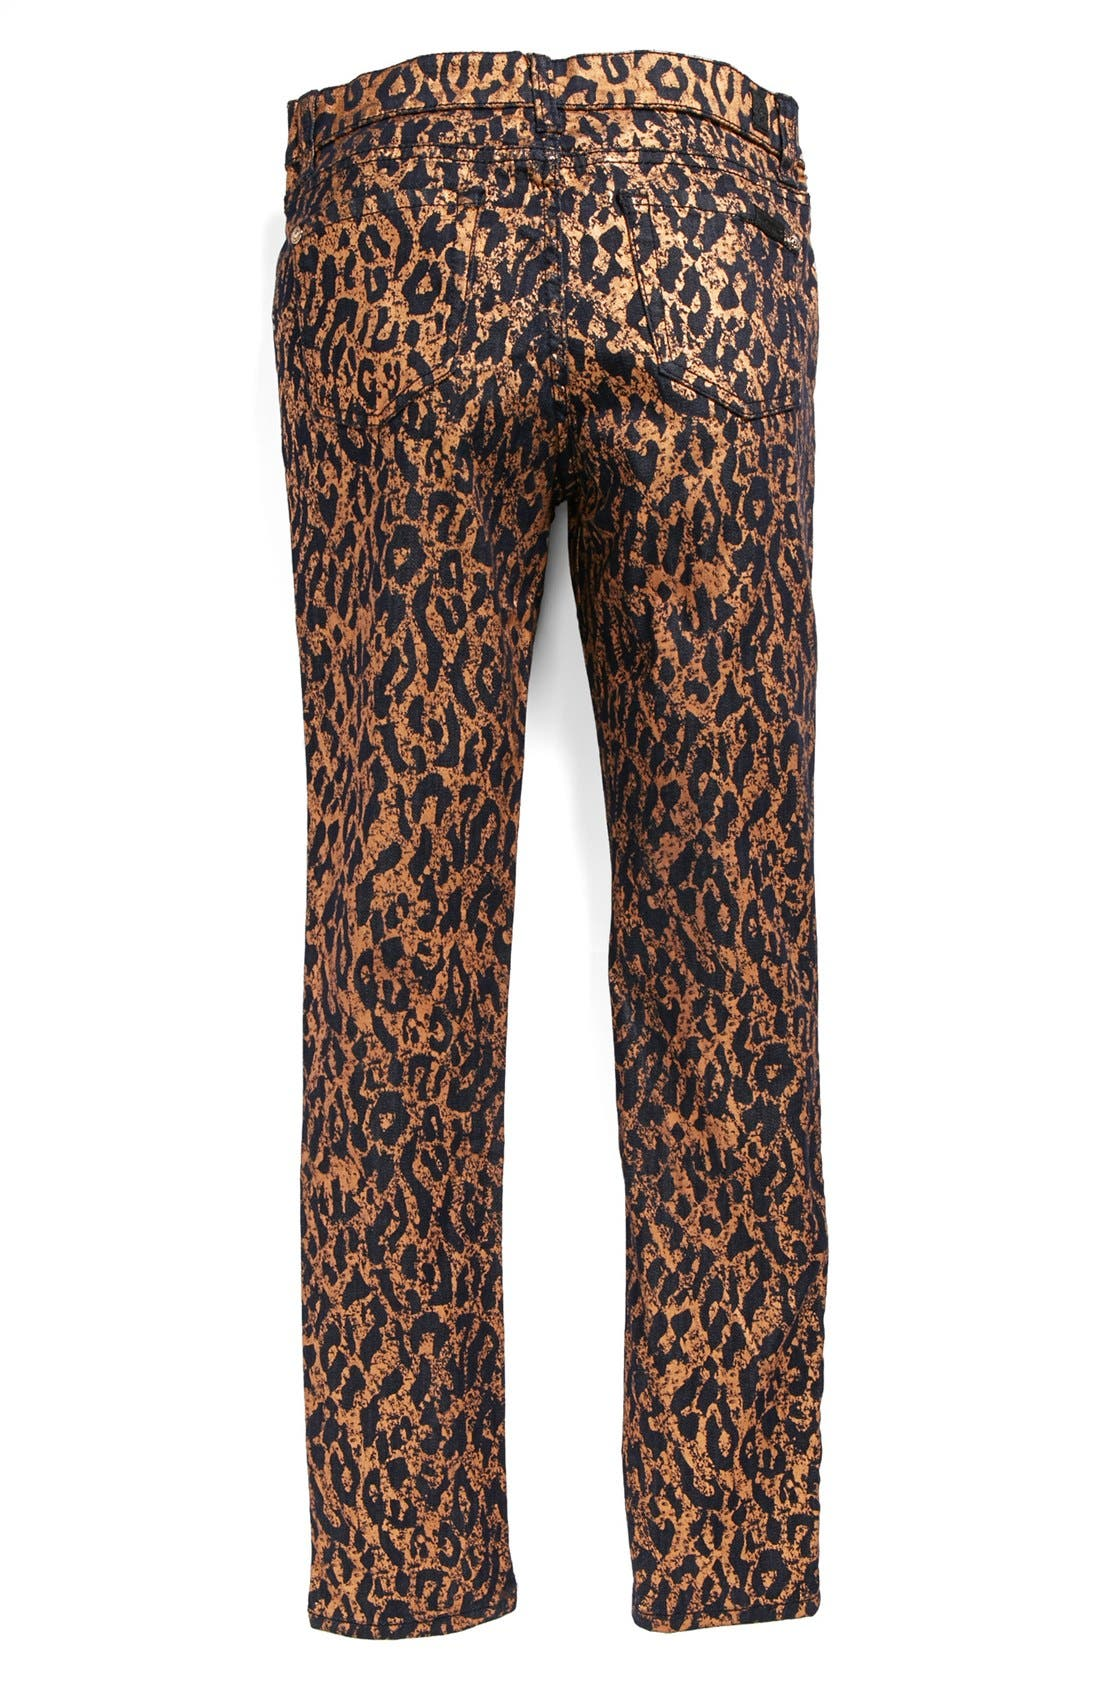 Main Image - 7 For All Mankind® 'The Skinny' Cheetah Print Skinny Jeans (Big Girls)